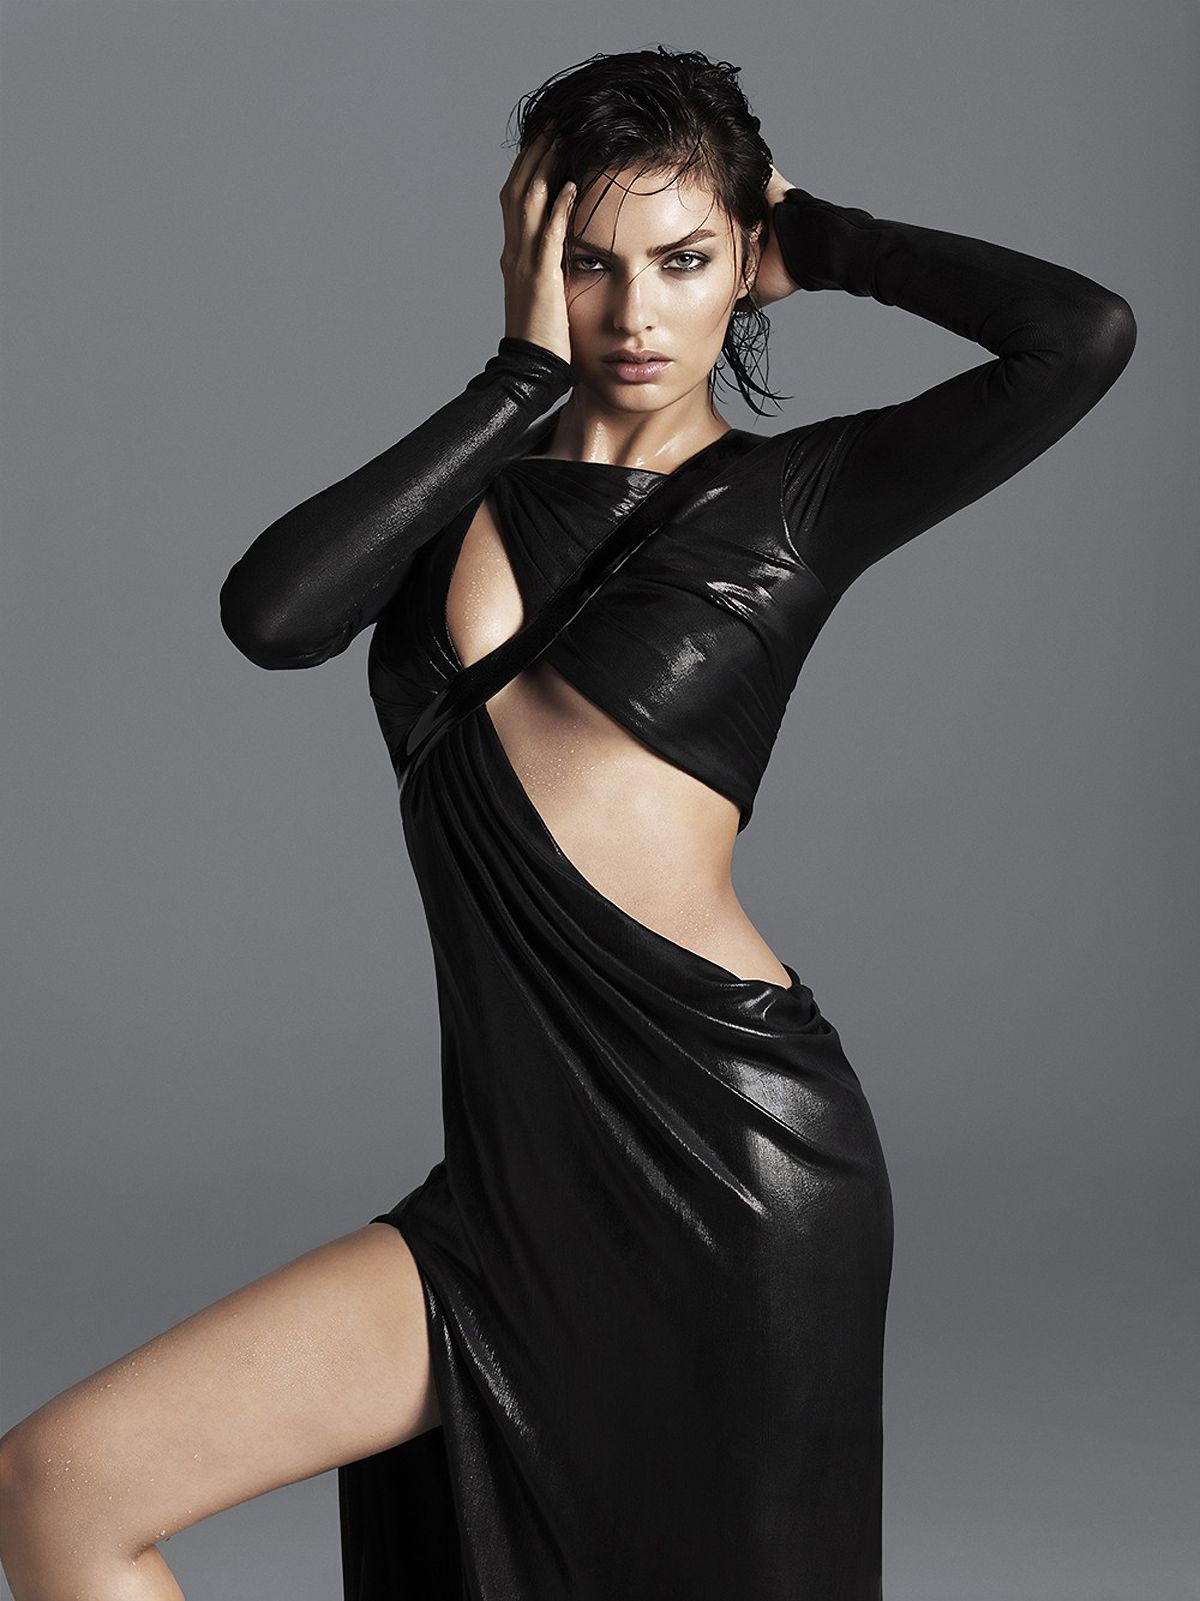 ALYSSA MILLER - Hong Jang Hyun Photoshoot